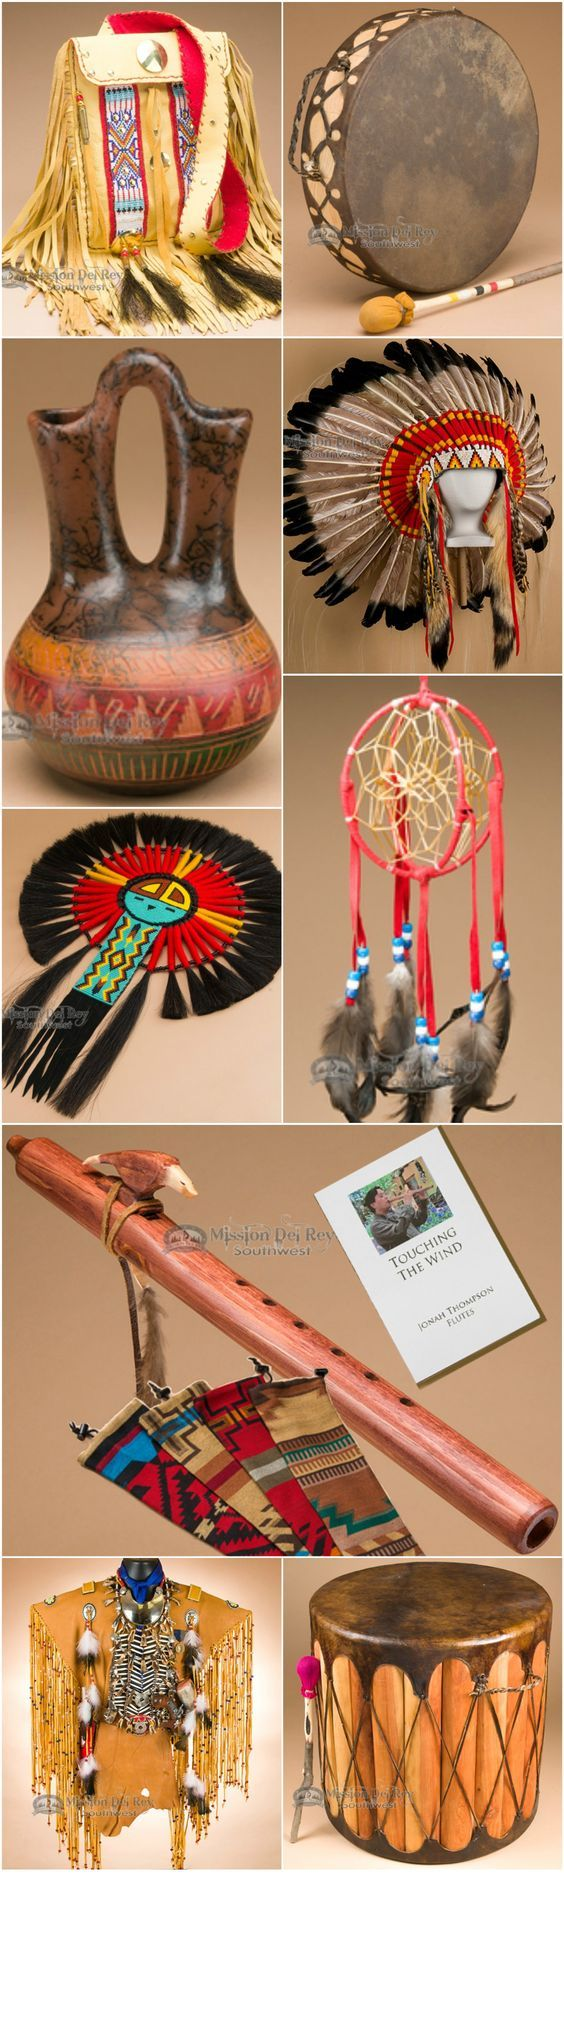 If you like Native American decor, check out our incredible Native American drums, medicine bags, headdresses, flutes, war shirts and more.  See over 5,000 Native American, southwest, and western home decor items in stock and ready to ship at http://www.missiondelrey.com/native-american-decor-artifacts/